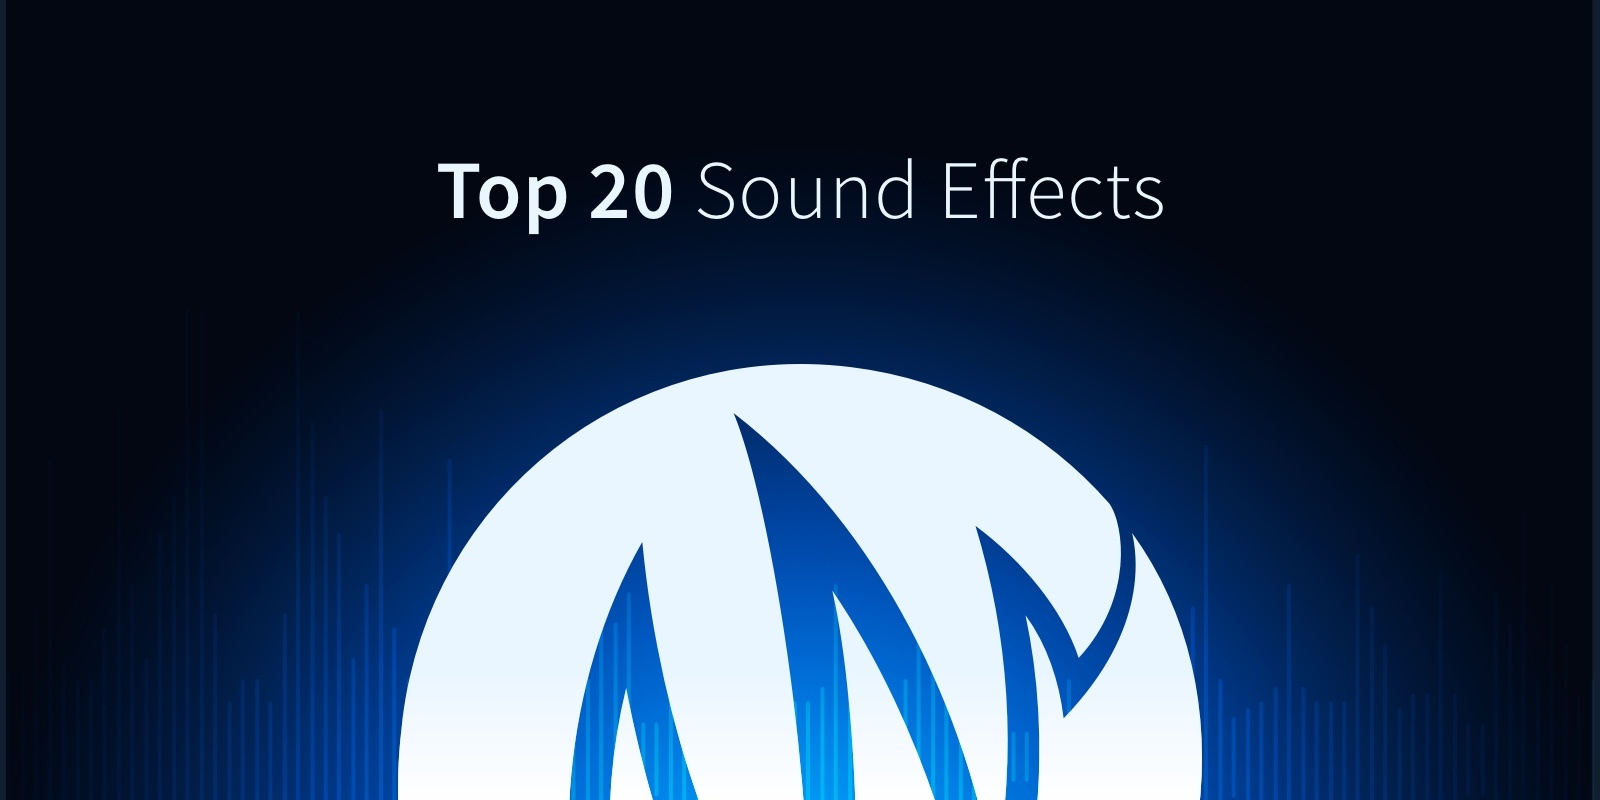 The 20 Most Popular Types of Sound Effects